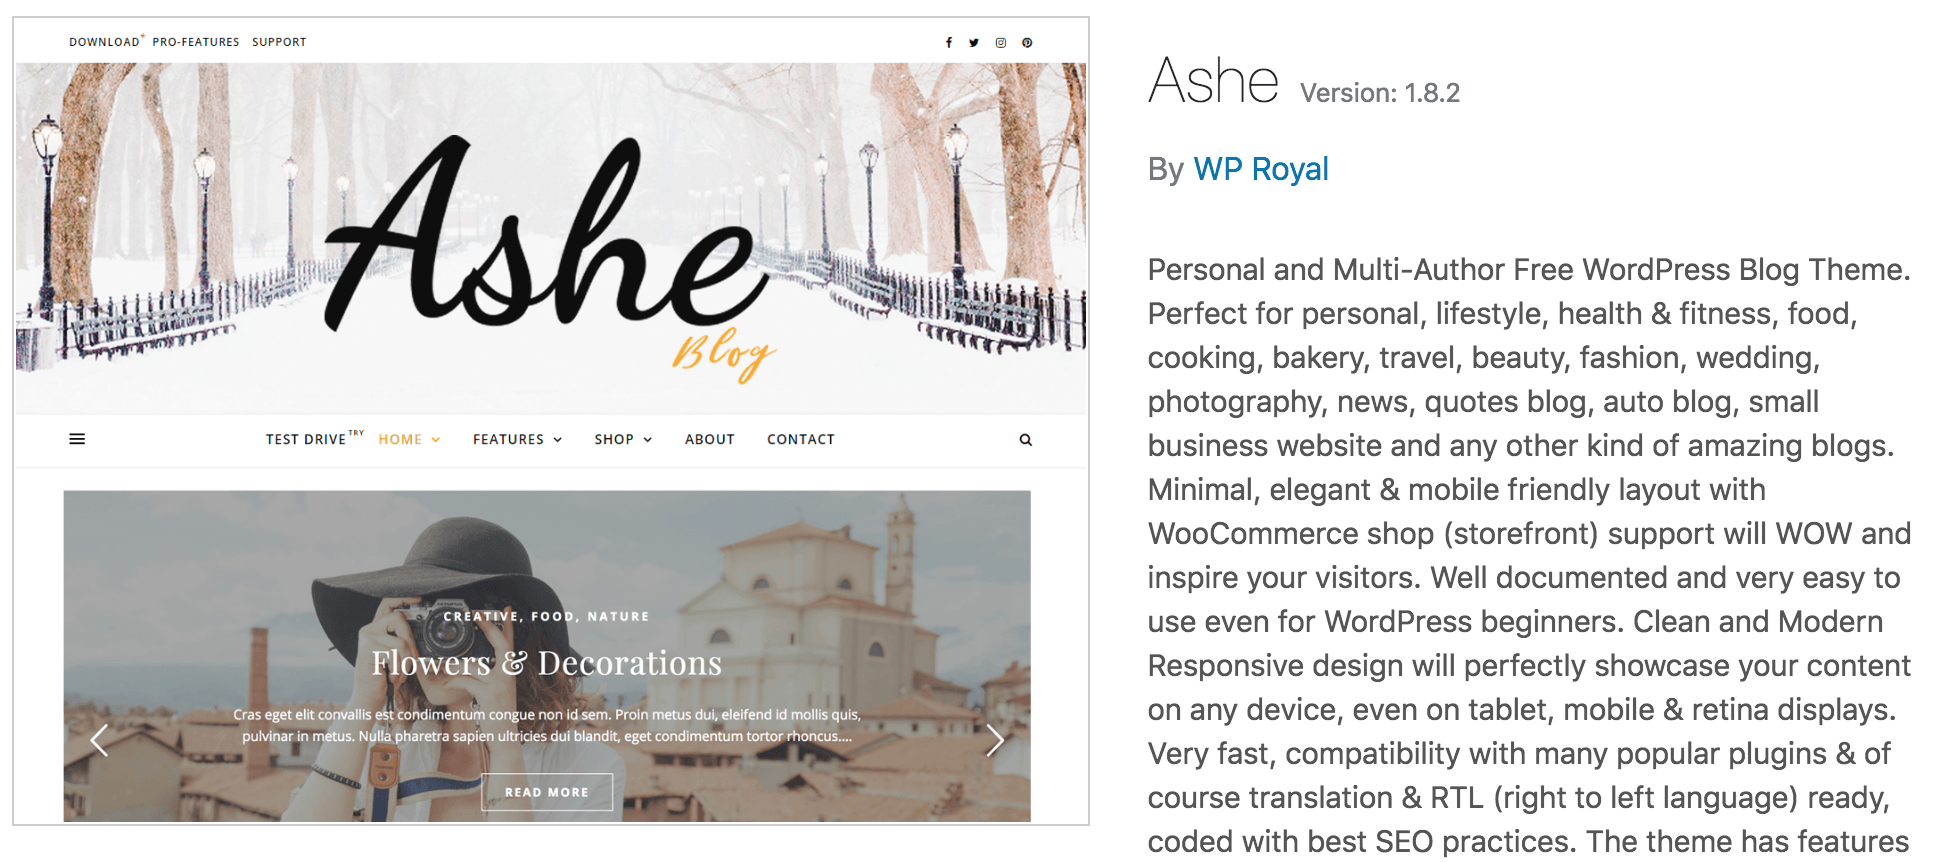 9 beautiful free WordPress themes for bloggers